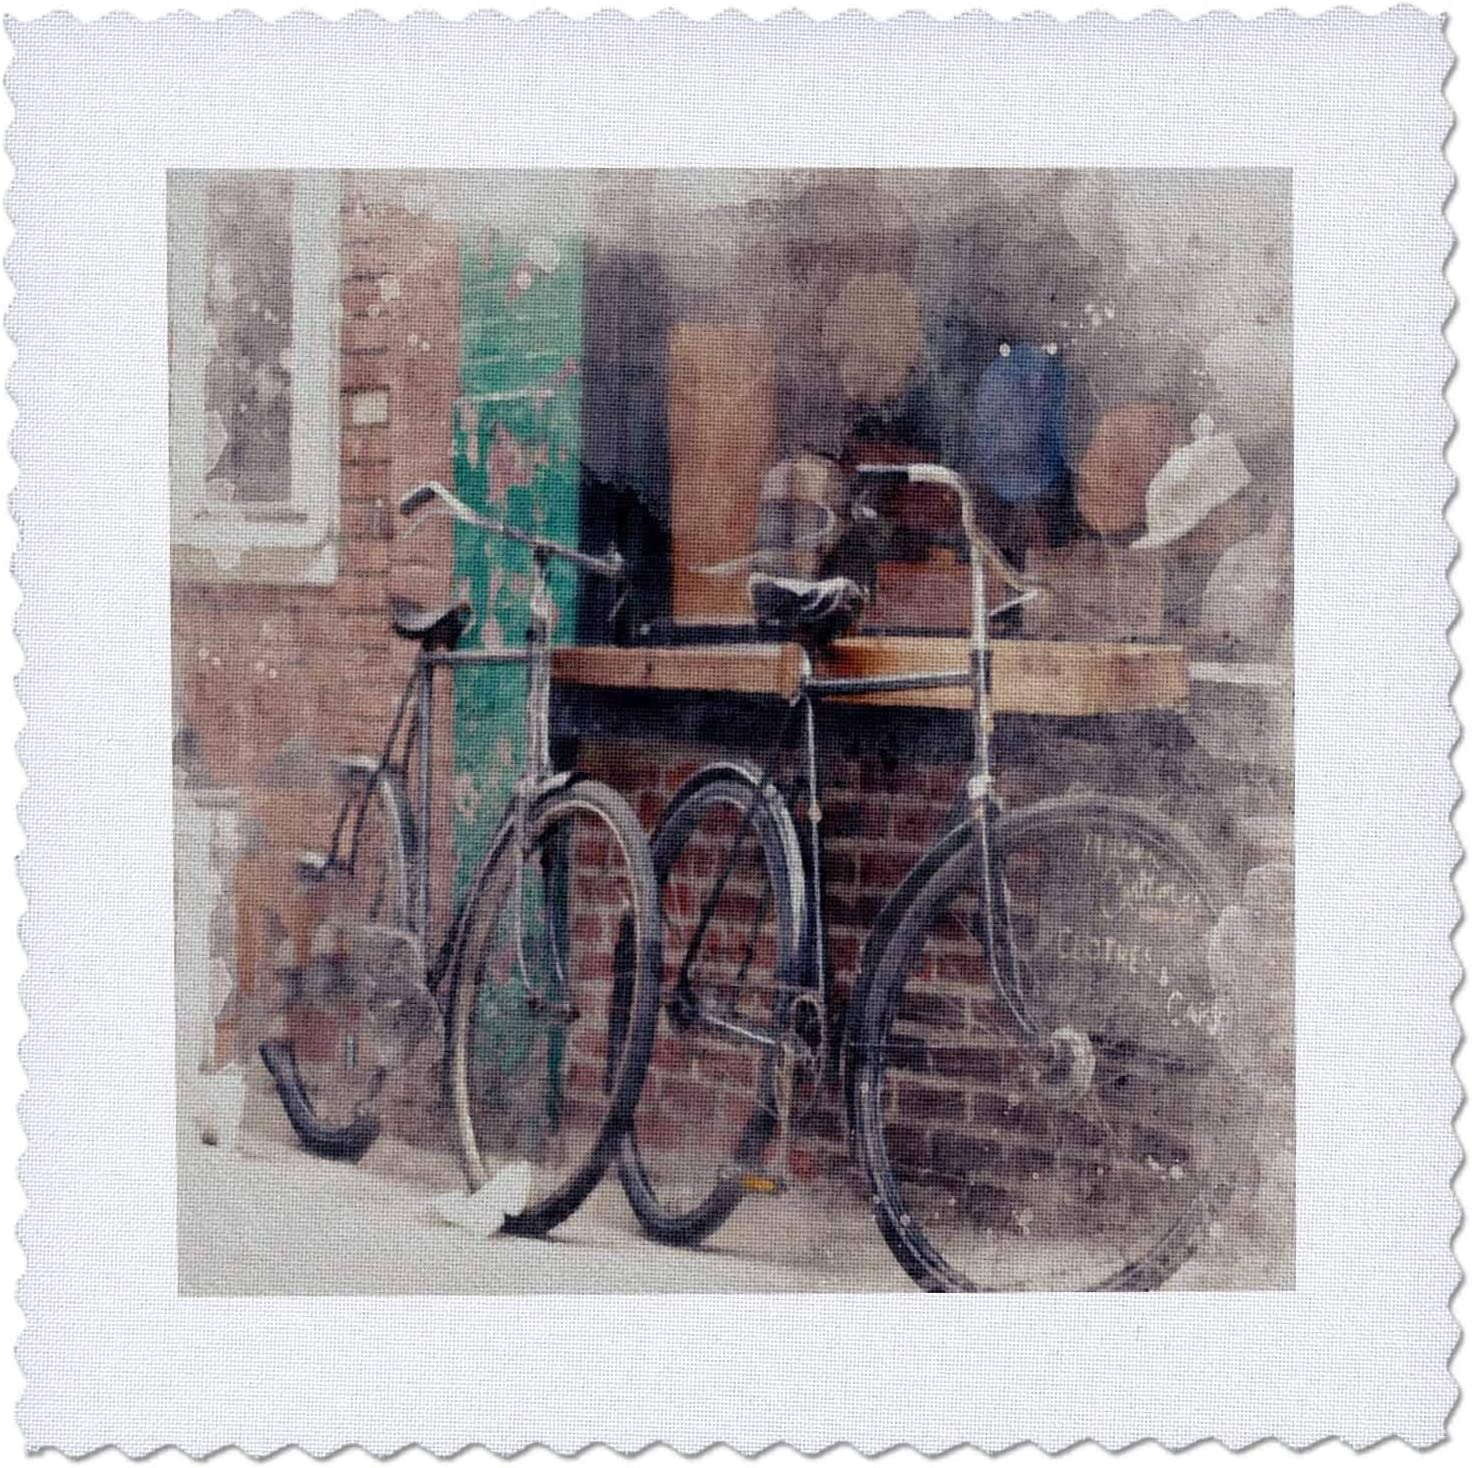 3dRose Image Of Special sale Cheap item Watercolor Two Bicycles - Building Qui Against A